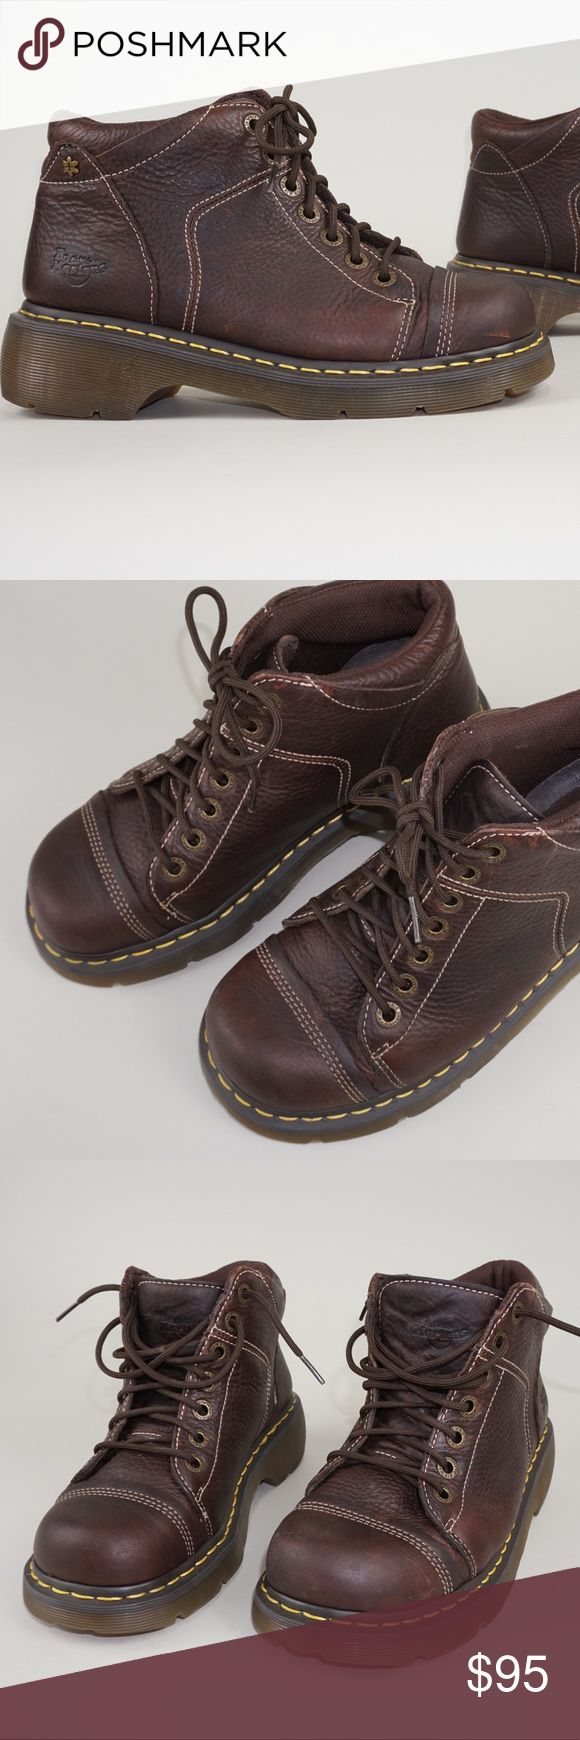 """Dr. Martens cap toe boots for women These are gently worn, in great shape.  Minimal signs of wear, please take a look of all the pictures to see the item details.  Let me know if you have any questions and reasonable offers are welcomed.   — Size: UK 7 / EU 41 / US 9 — Color: Dark Brown  — Heel: 2""""  #D103 Dr. Martens Shoes Combat & Moto Boots"""